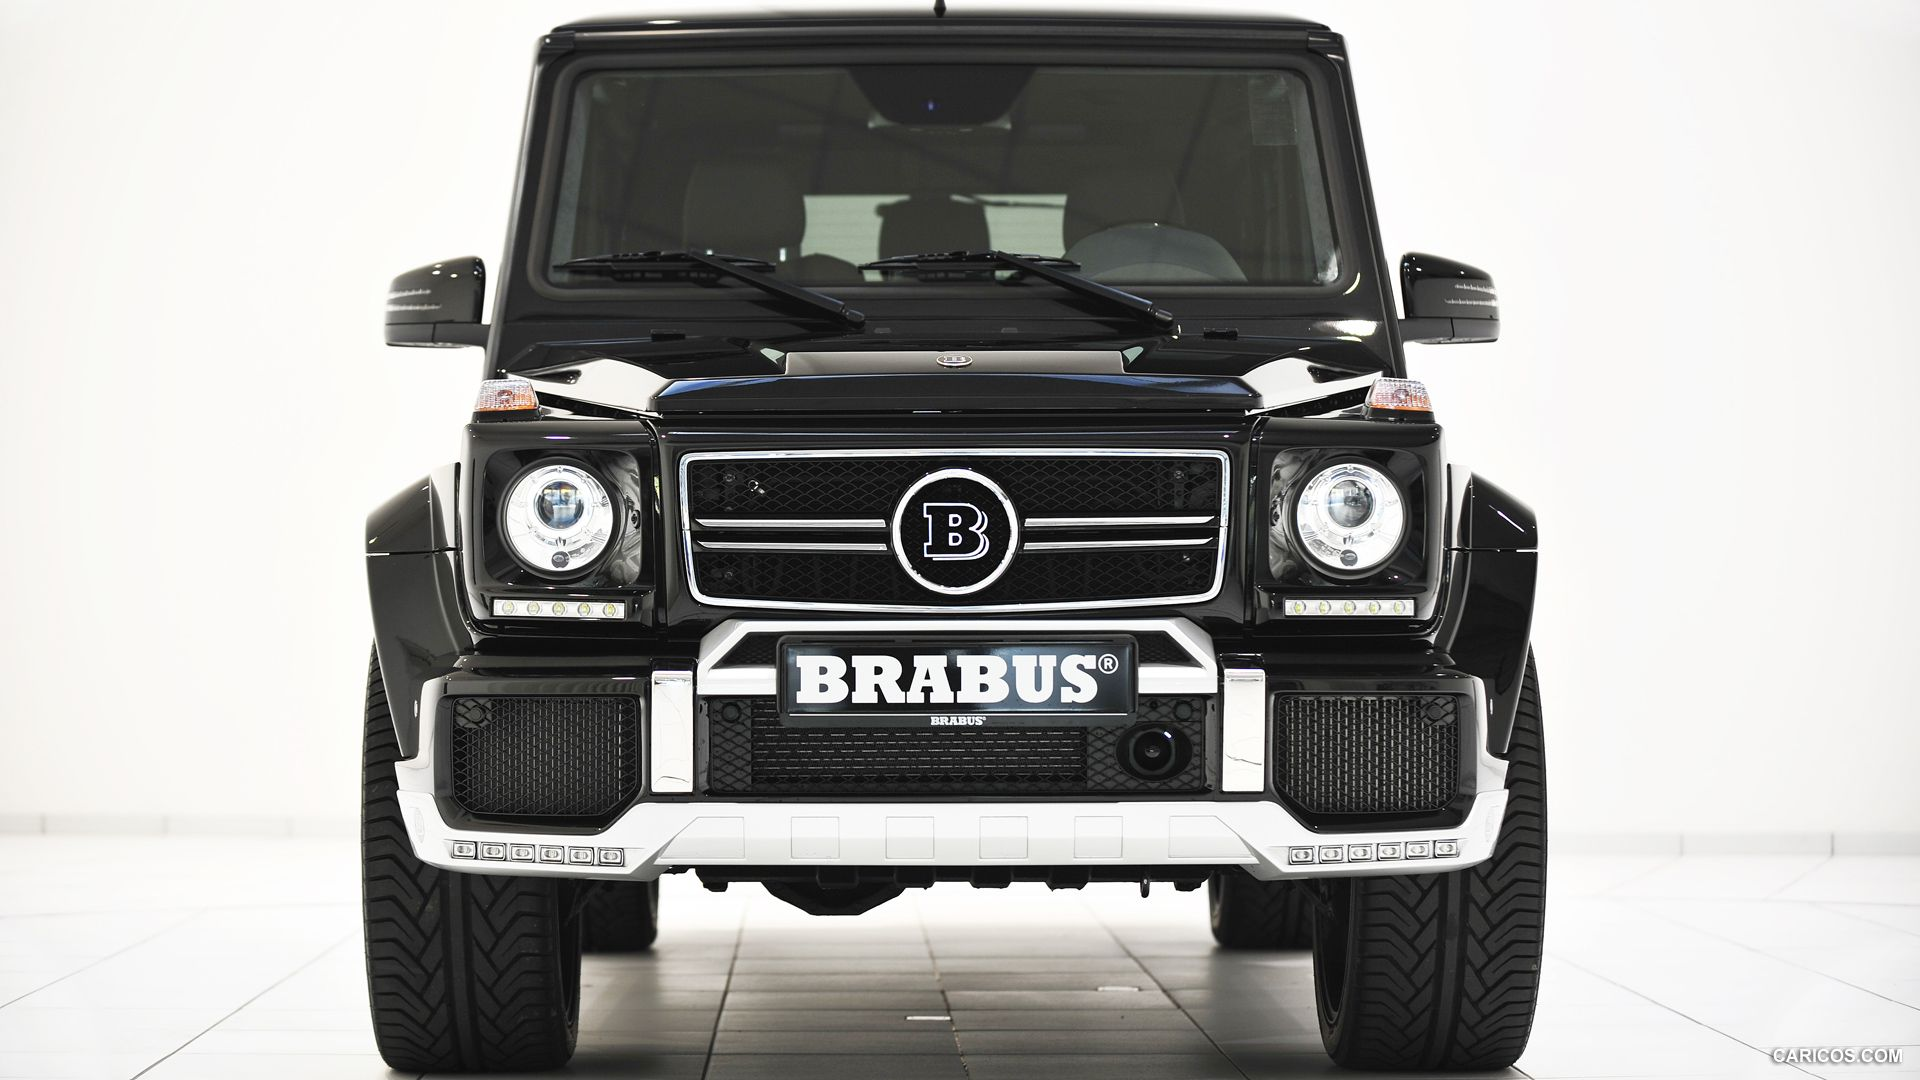 2013 BRABUS B63 620 WIDESTAR based on M Benz G63 AMG Front HD